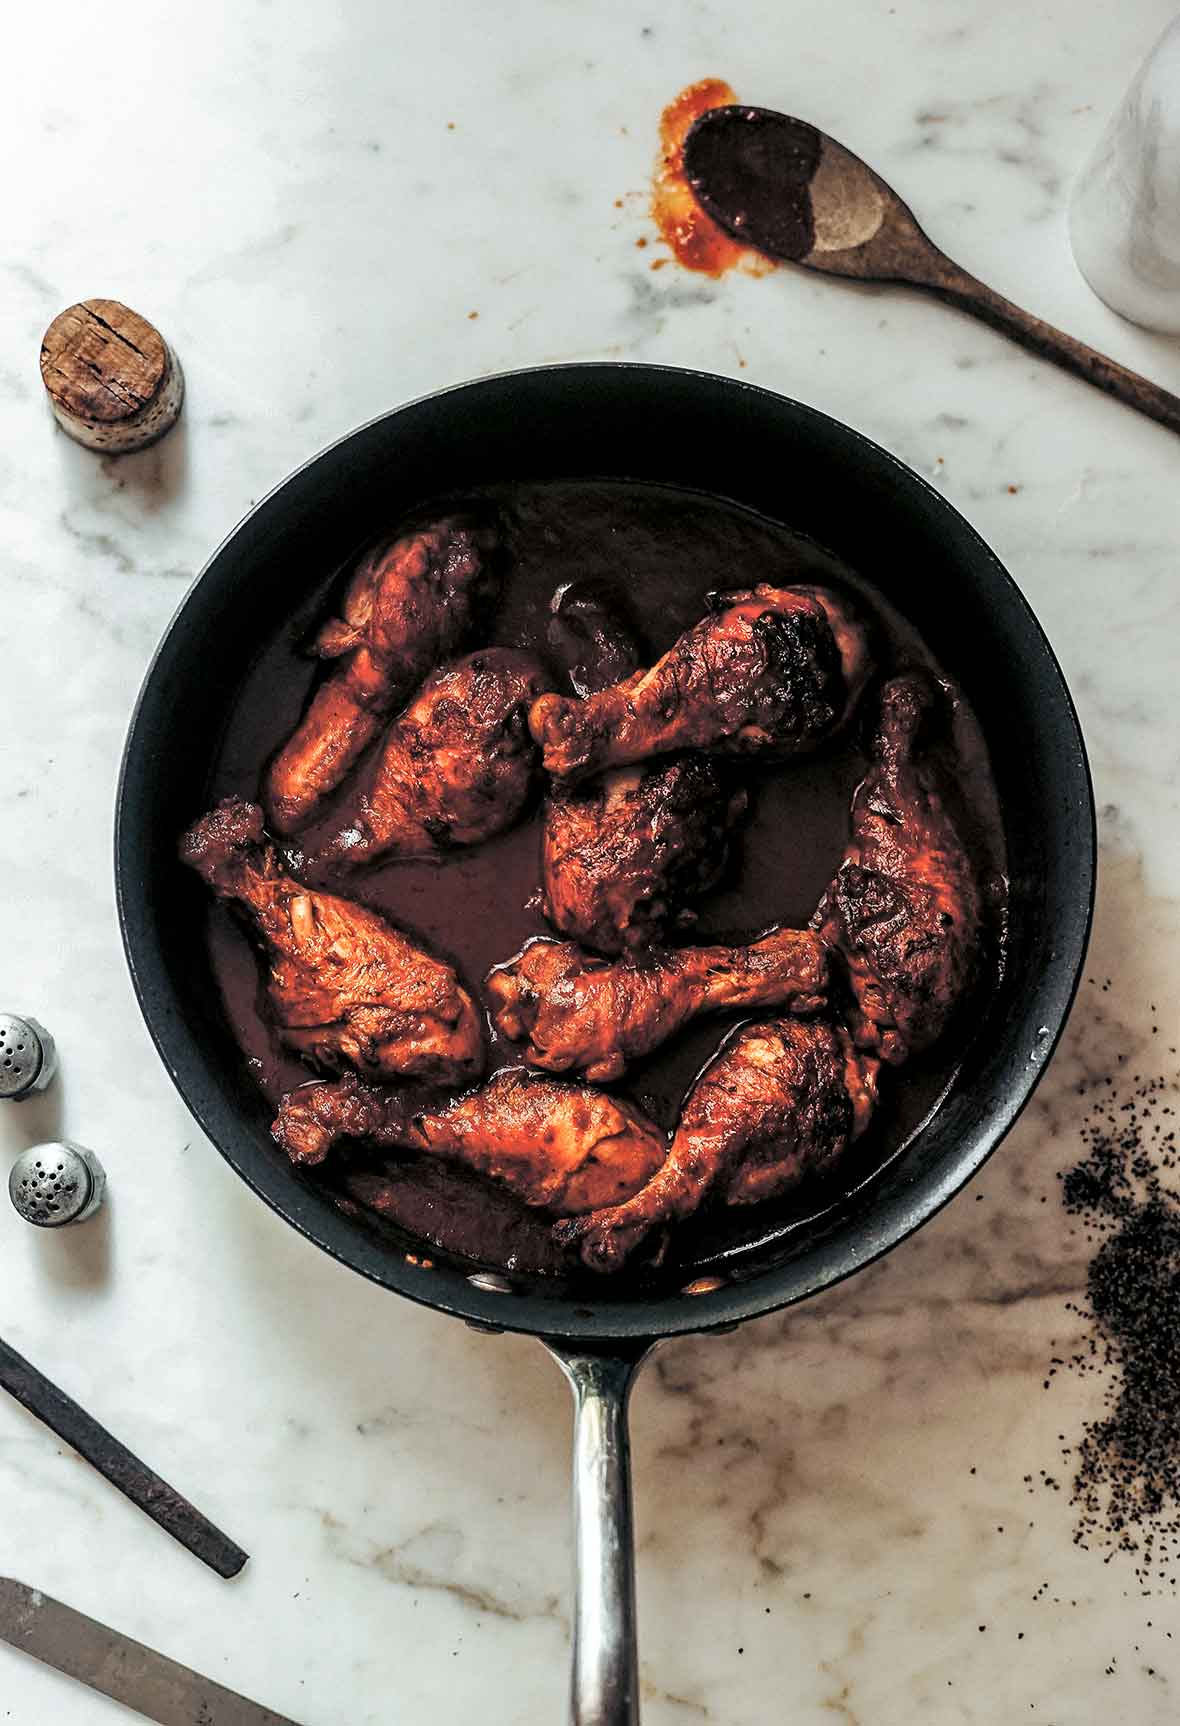 Braised Chicken Drumsticks With Wine